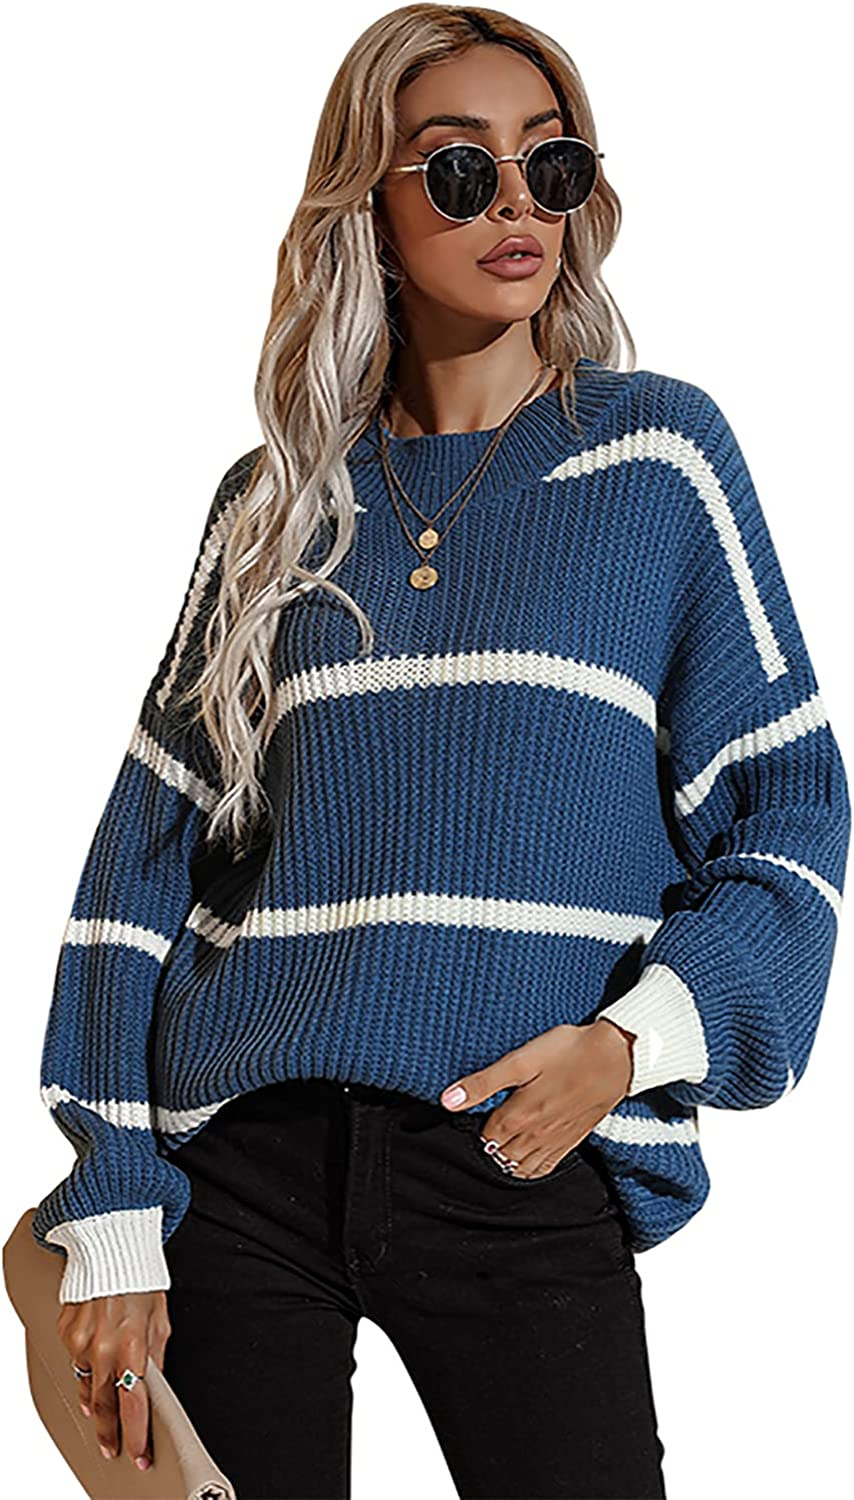 BIUBIU Women's Fashion Long Sleeve Striped Color Block Knitted Sweater Loose Oversized Pullover Jumper Tops